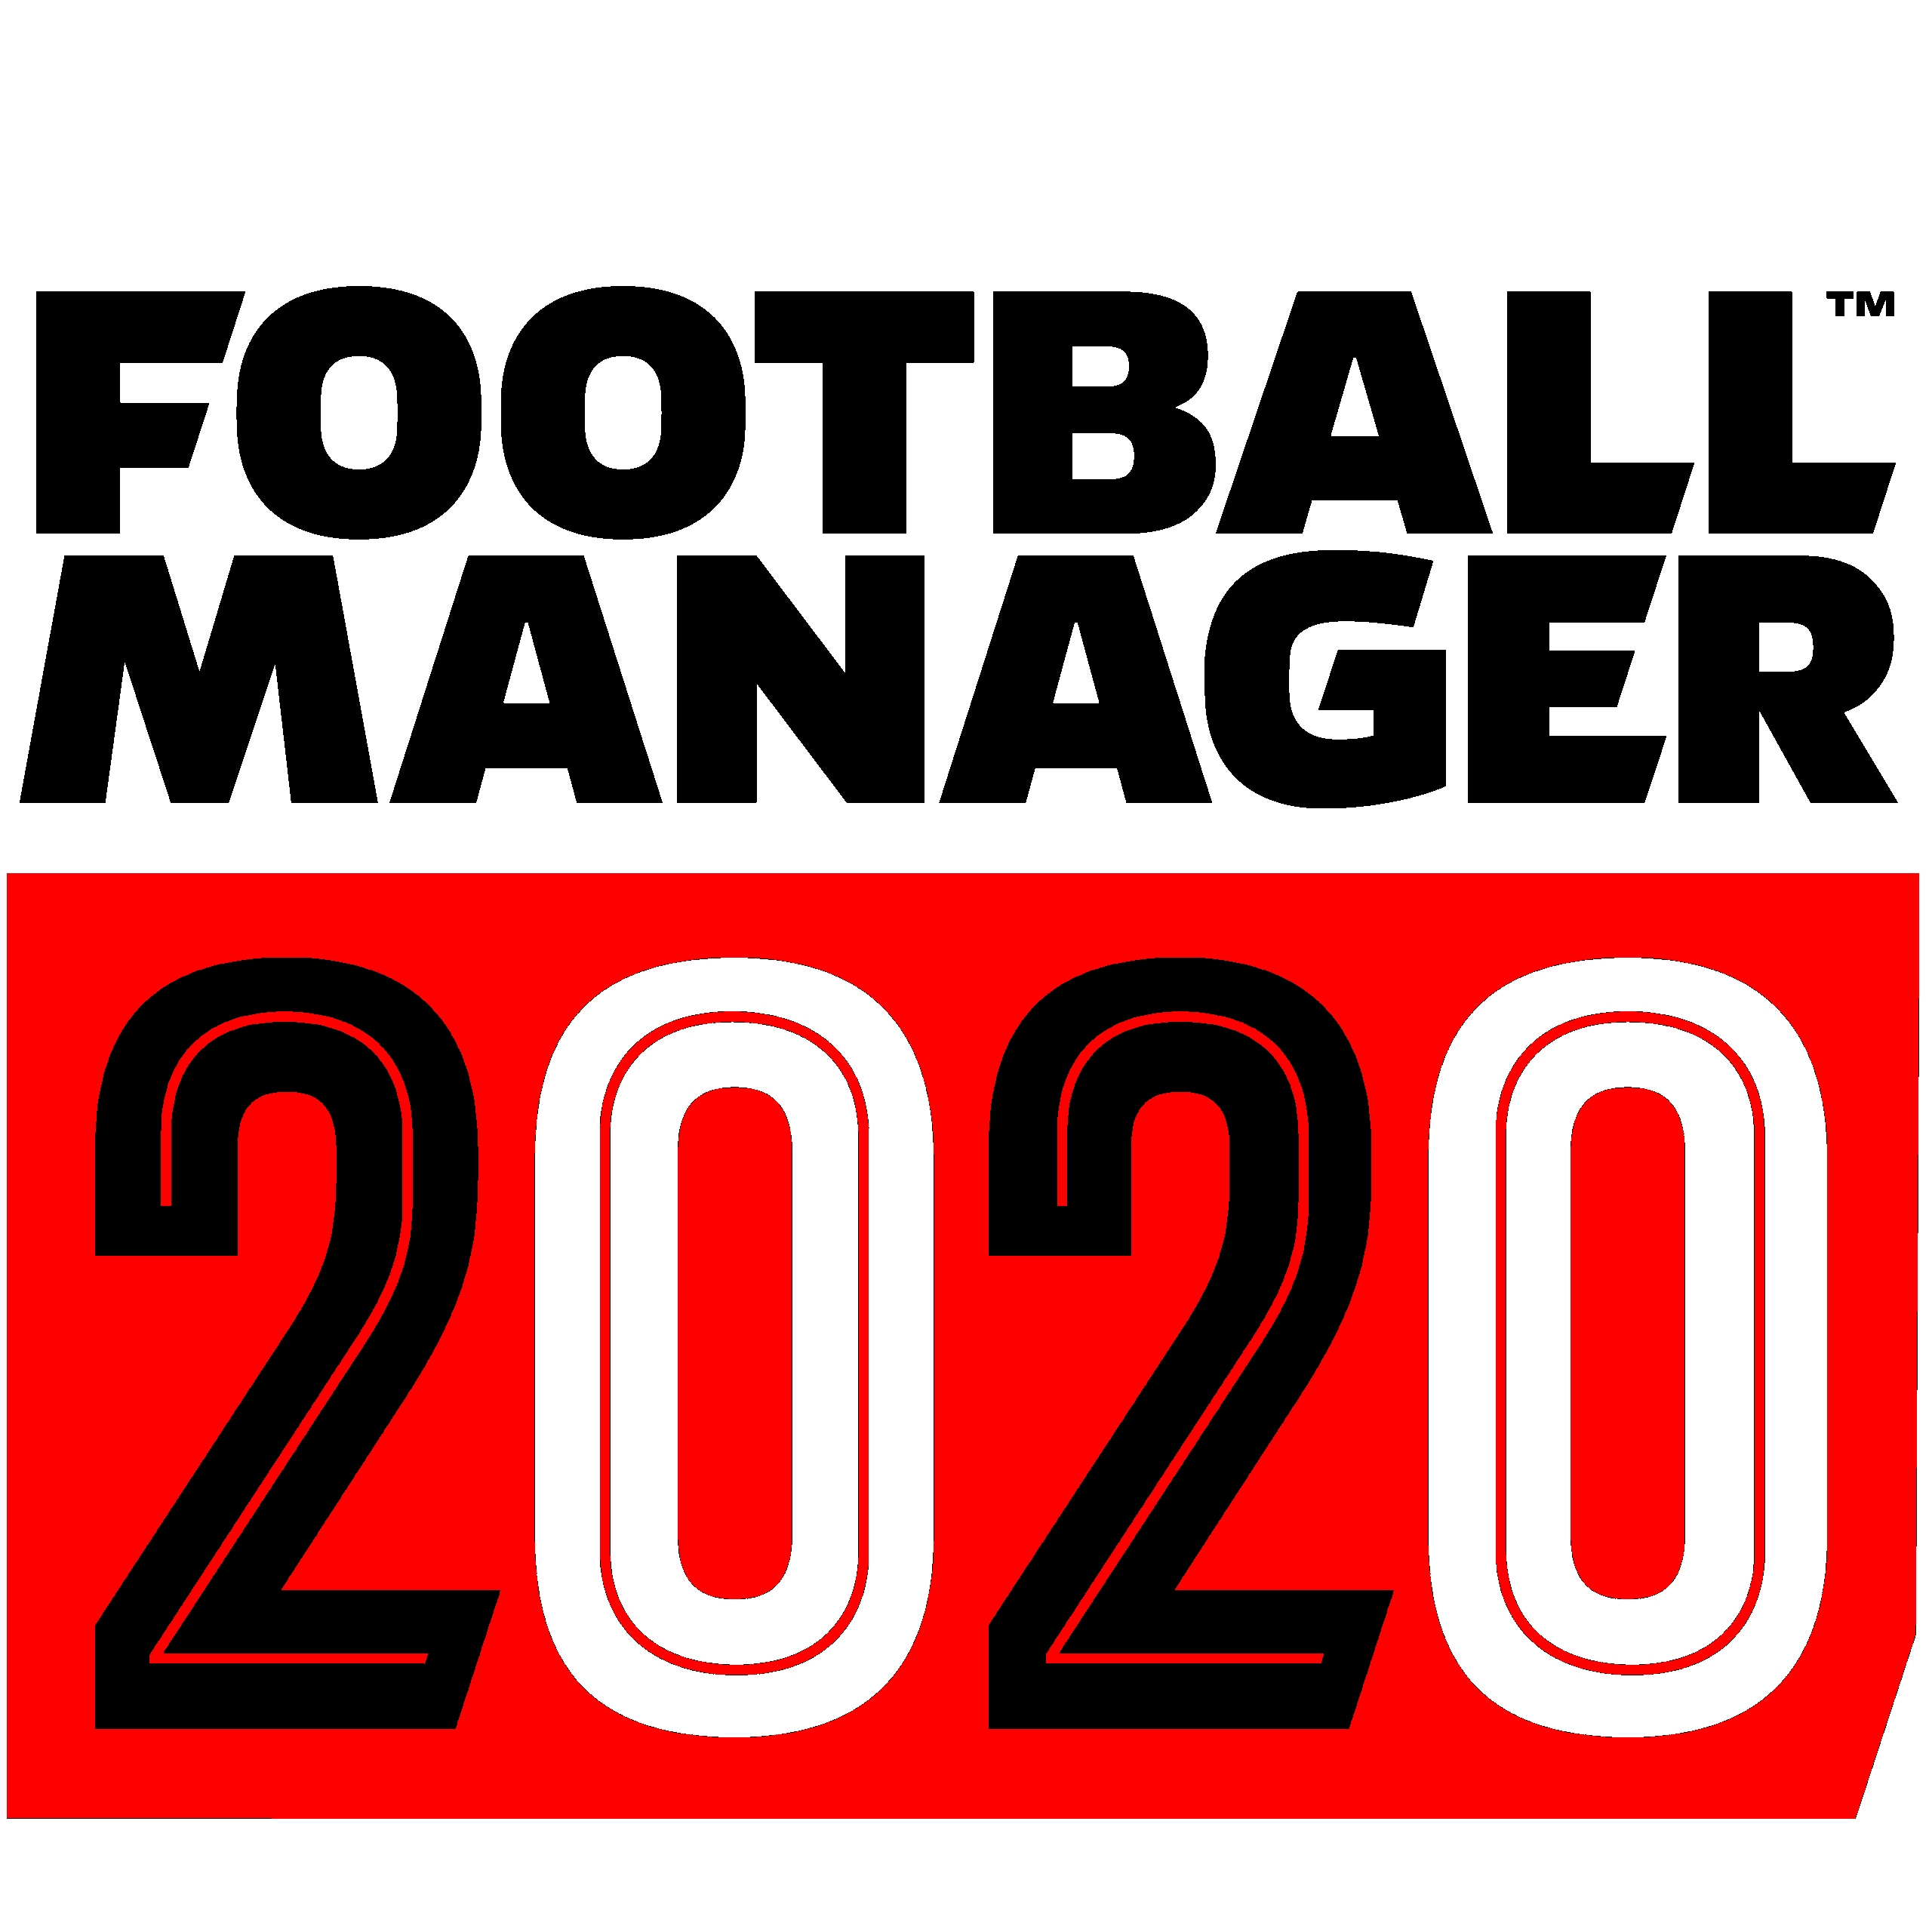 Item FOOTBALL MANAGER FM 2020 20 TOUCH EDITOR VIP ACCOUNT